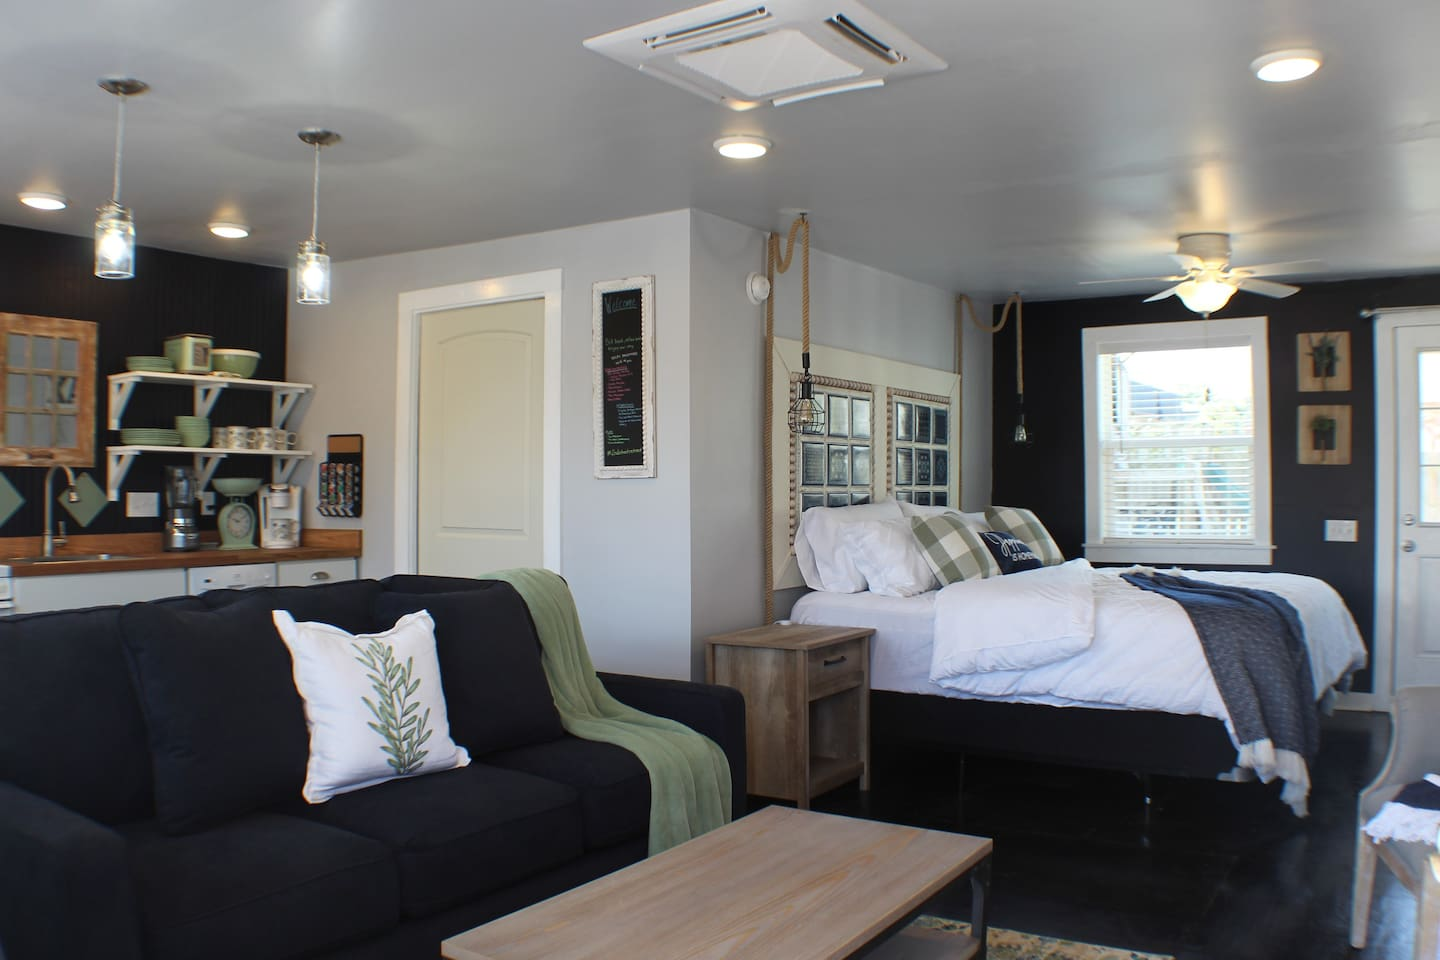 Enjoy this spacious 400 square feet studio apartment featuring a cozy king size bed, a Laz-Boy SlumberAir queen size sofa bed, a fully stocked kitchen and full size bath.  We also provide WiFi, Cable TV, Hulu and Netflix.